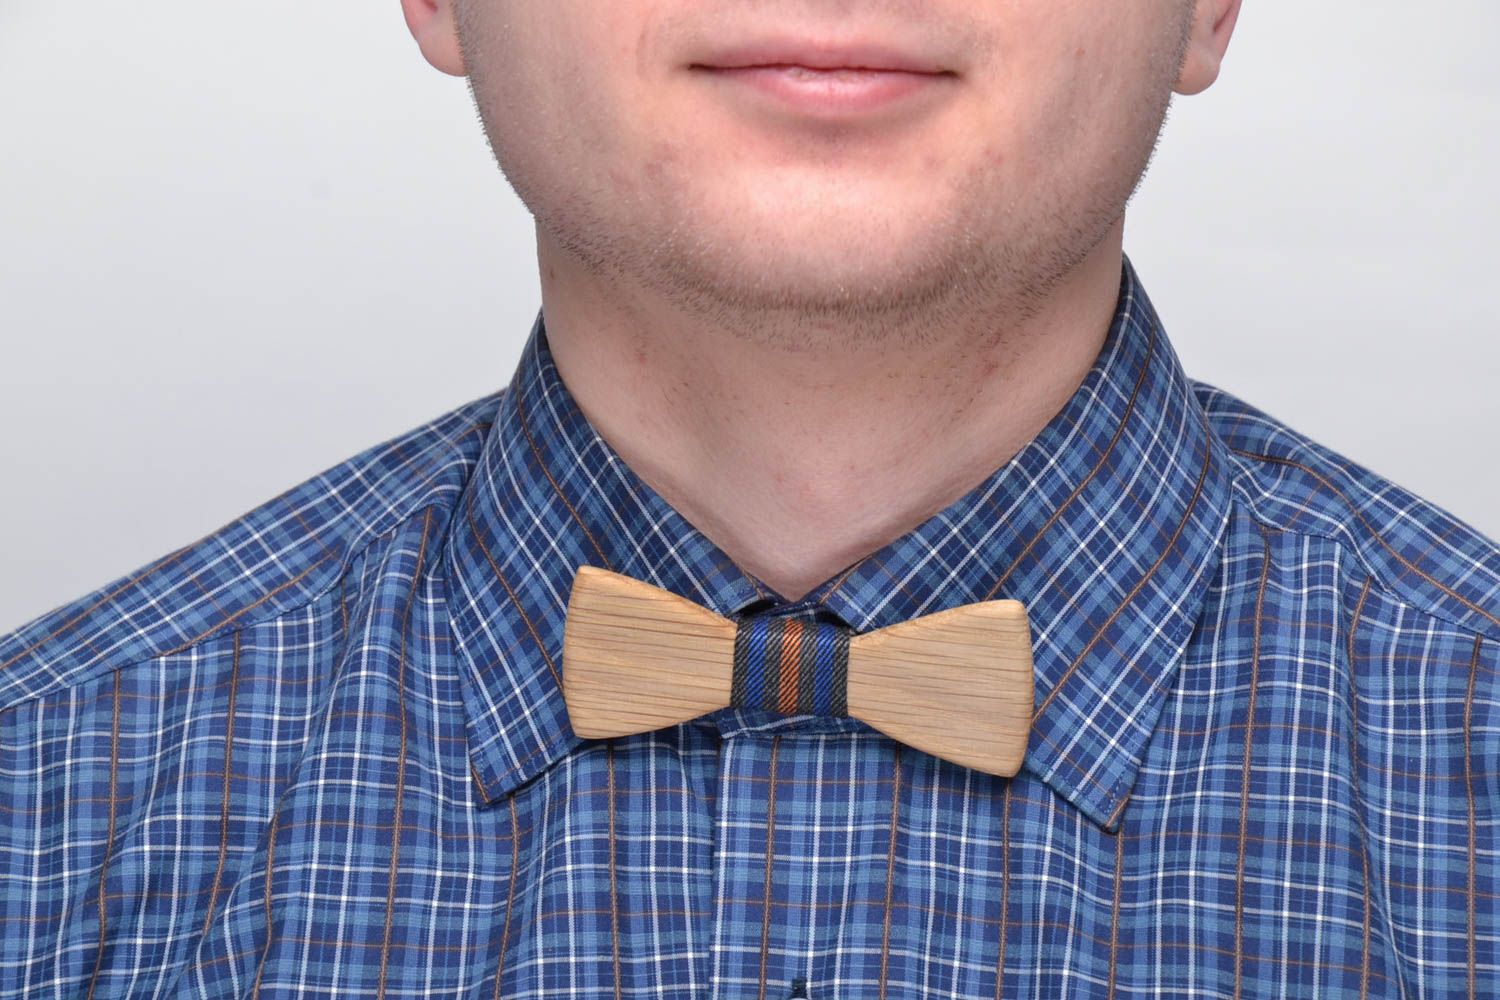 Handmade wooden bow tie photo 2